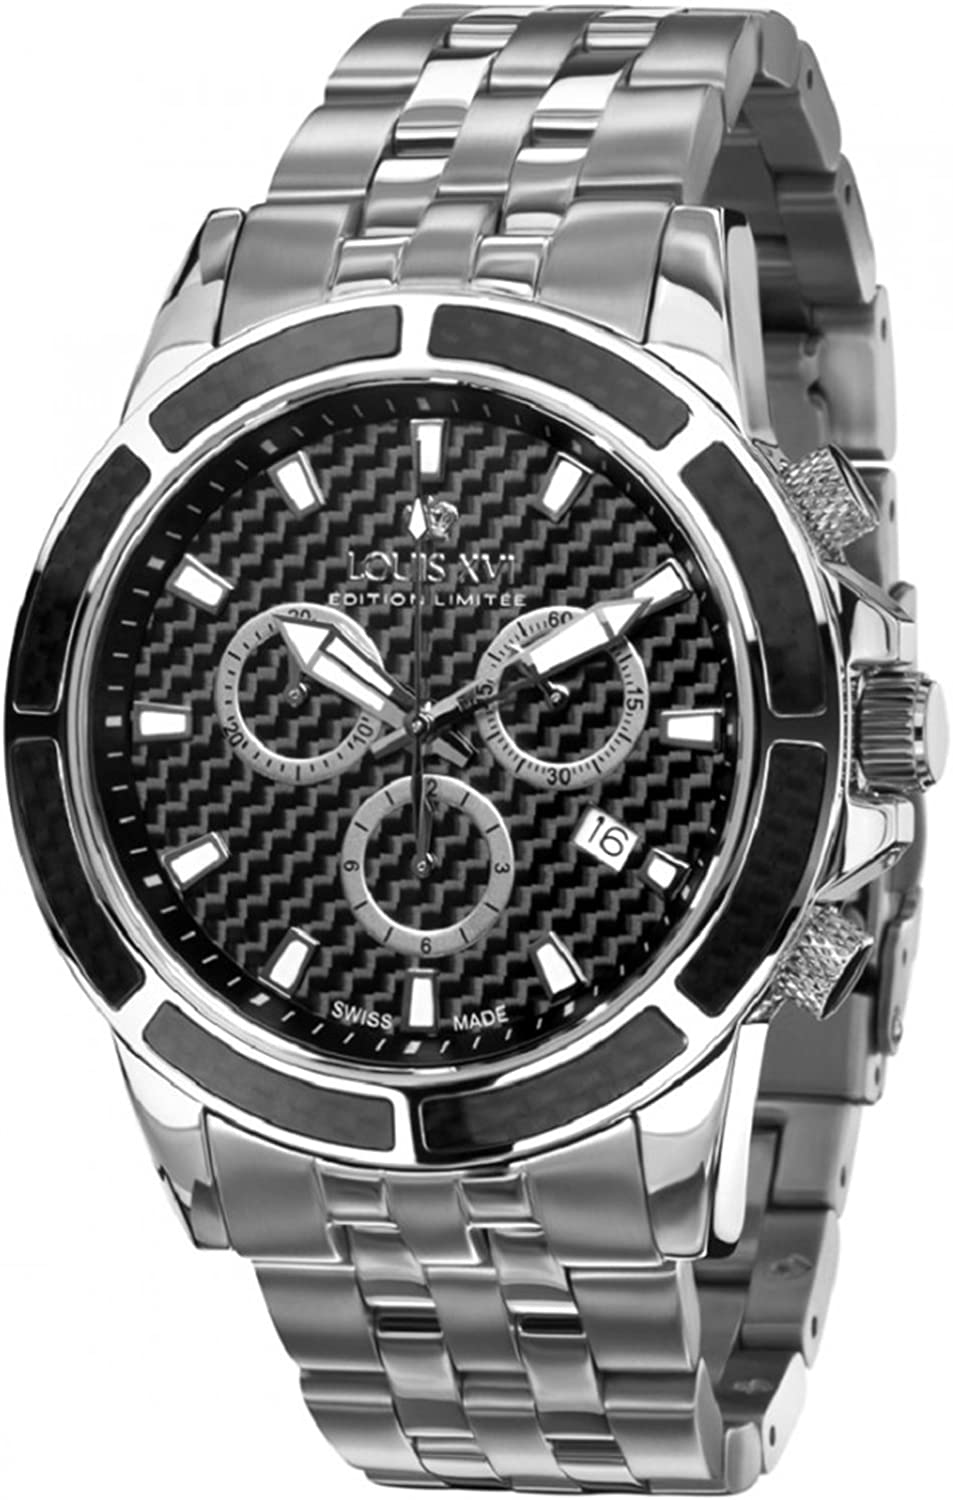 Top 20 Mens Chronograph Watches on a fair Budget 2019